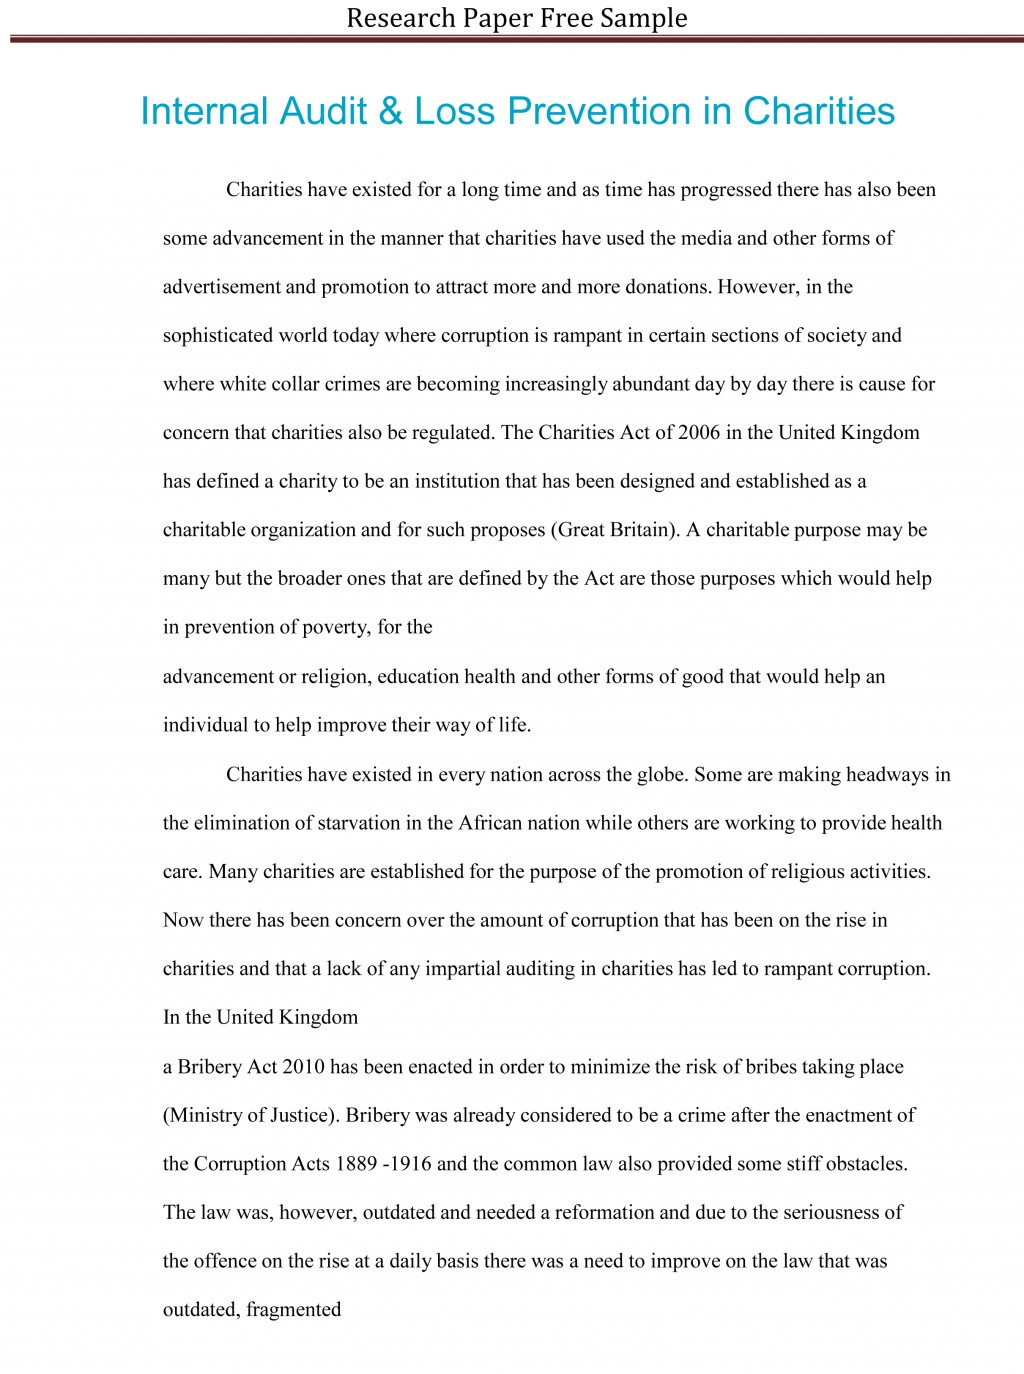 009 Research Paper Sample Examples Of College Incredible Papers Example Apa Style Format Large